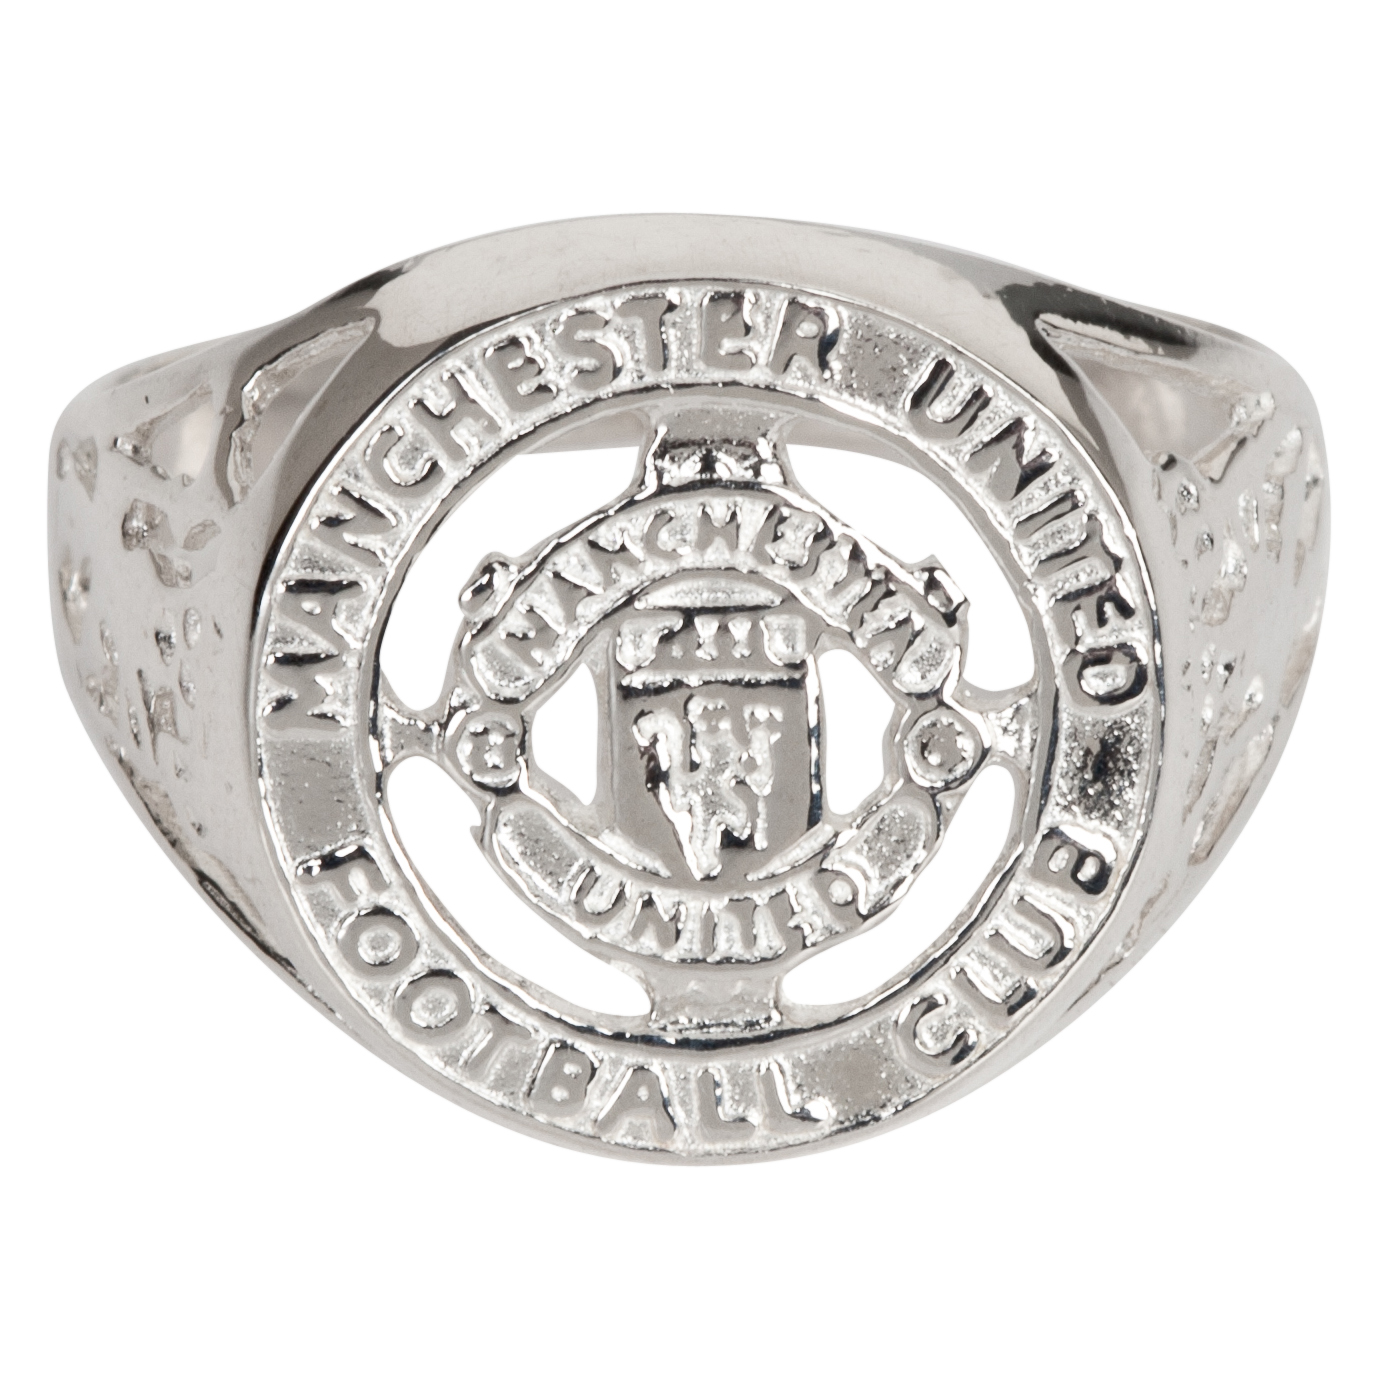 Manchester United Large Crest Cut Out Ring - Sterling Silver